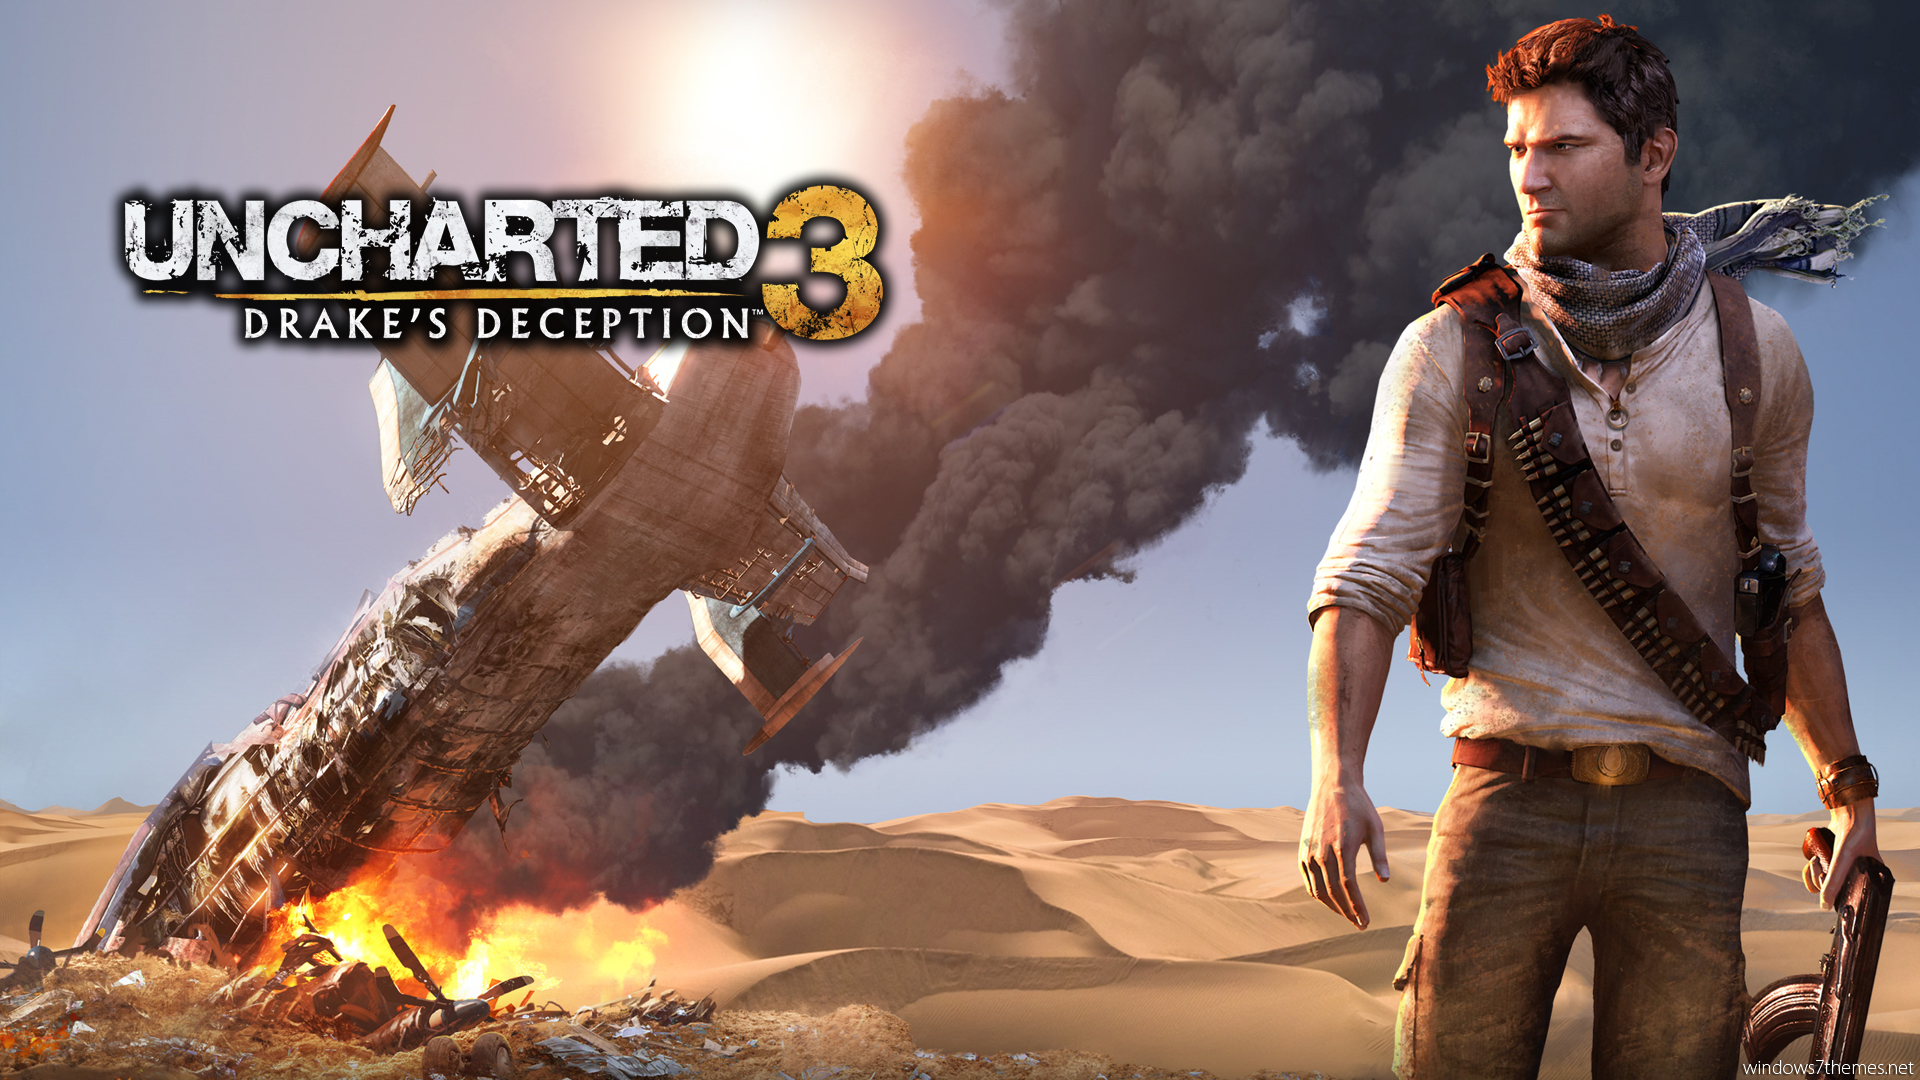 Reviews have started pouring in for Naughty Dog's latest masterpiece, Uncharted 3. Given that this is the sequel to Uncharted 2, the multiple game of the ...